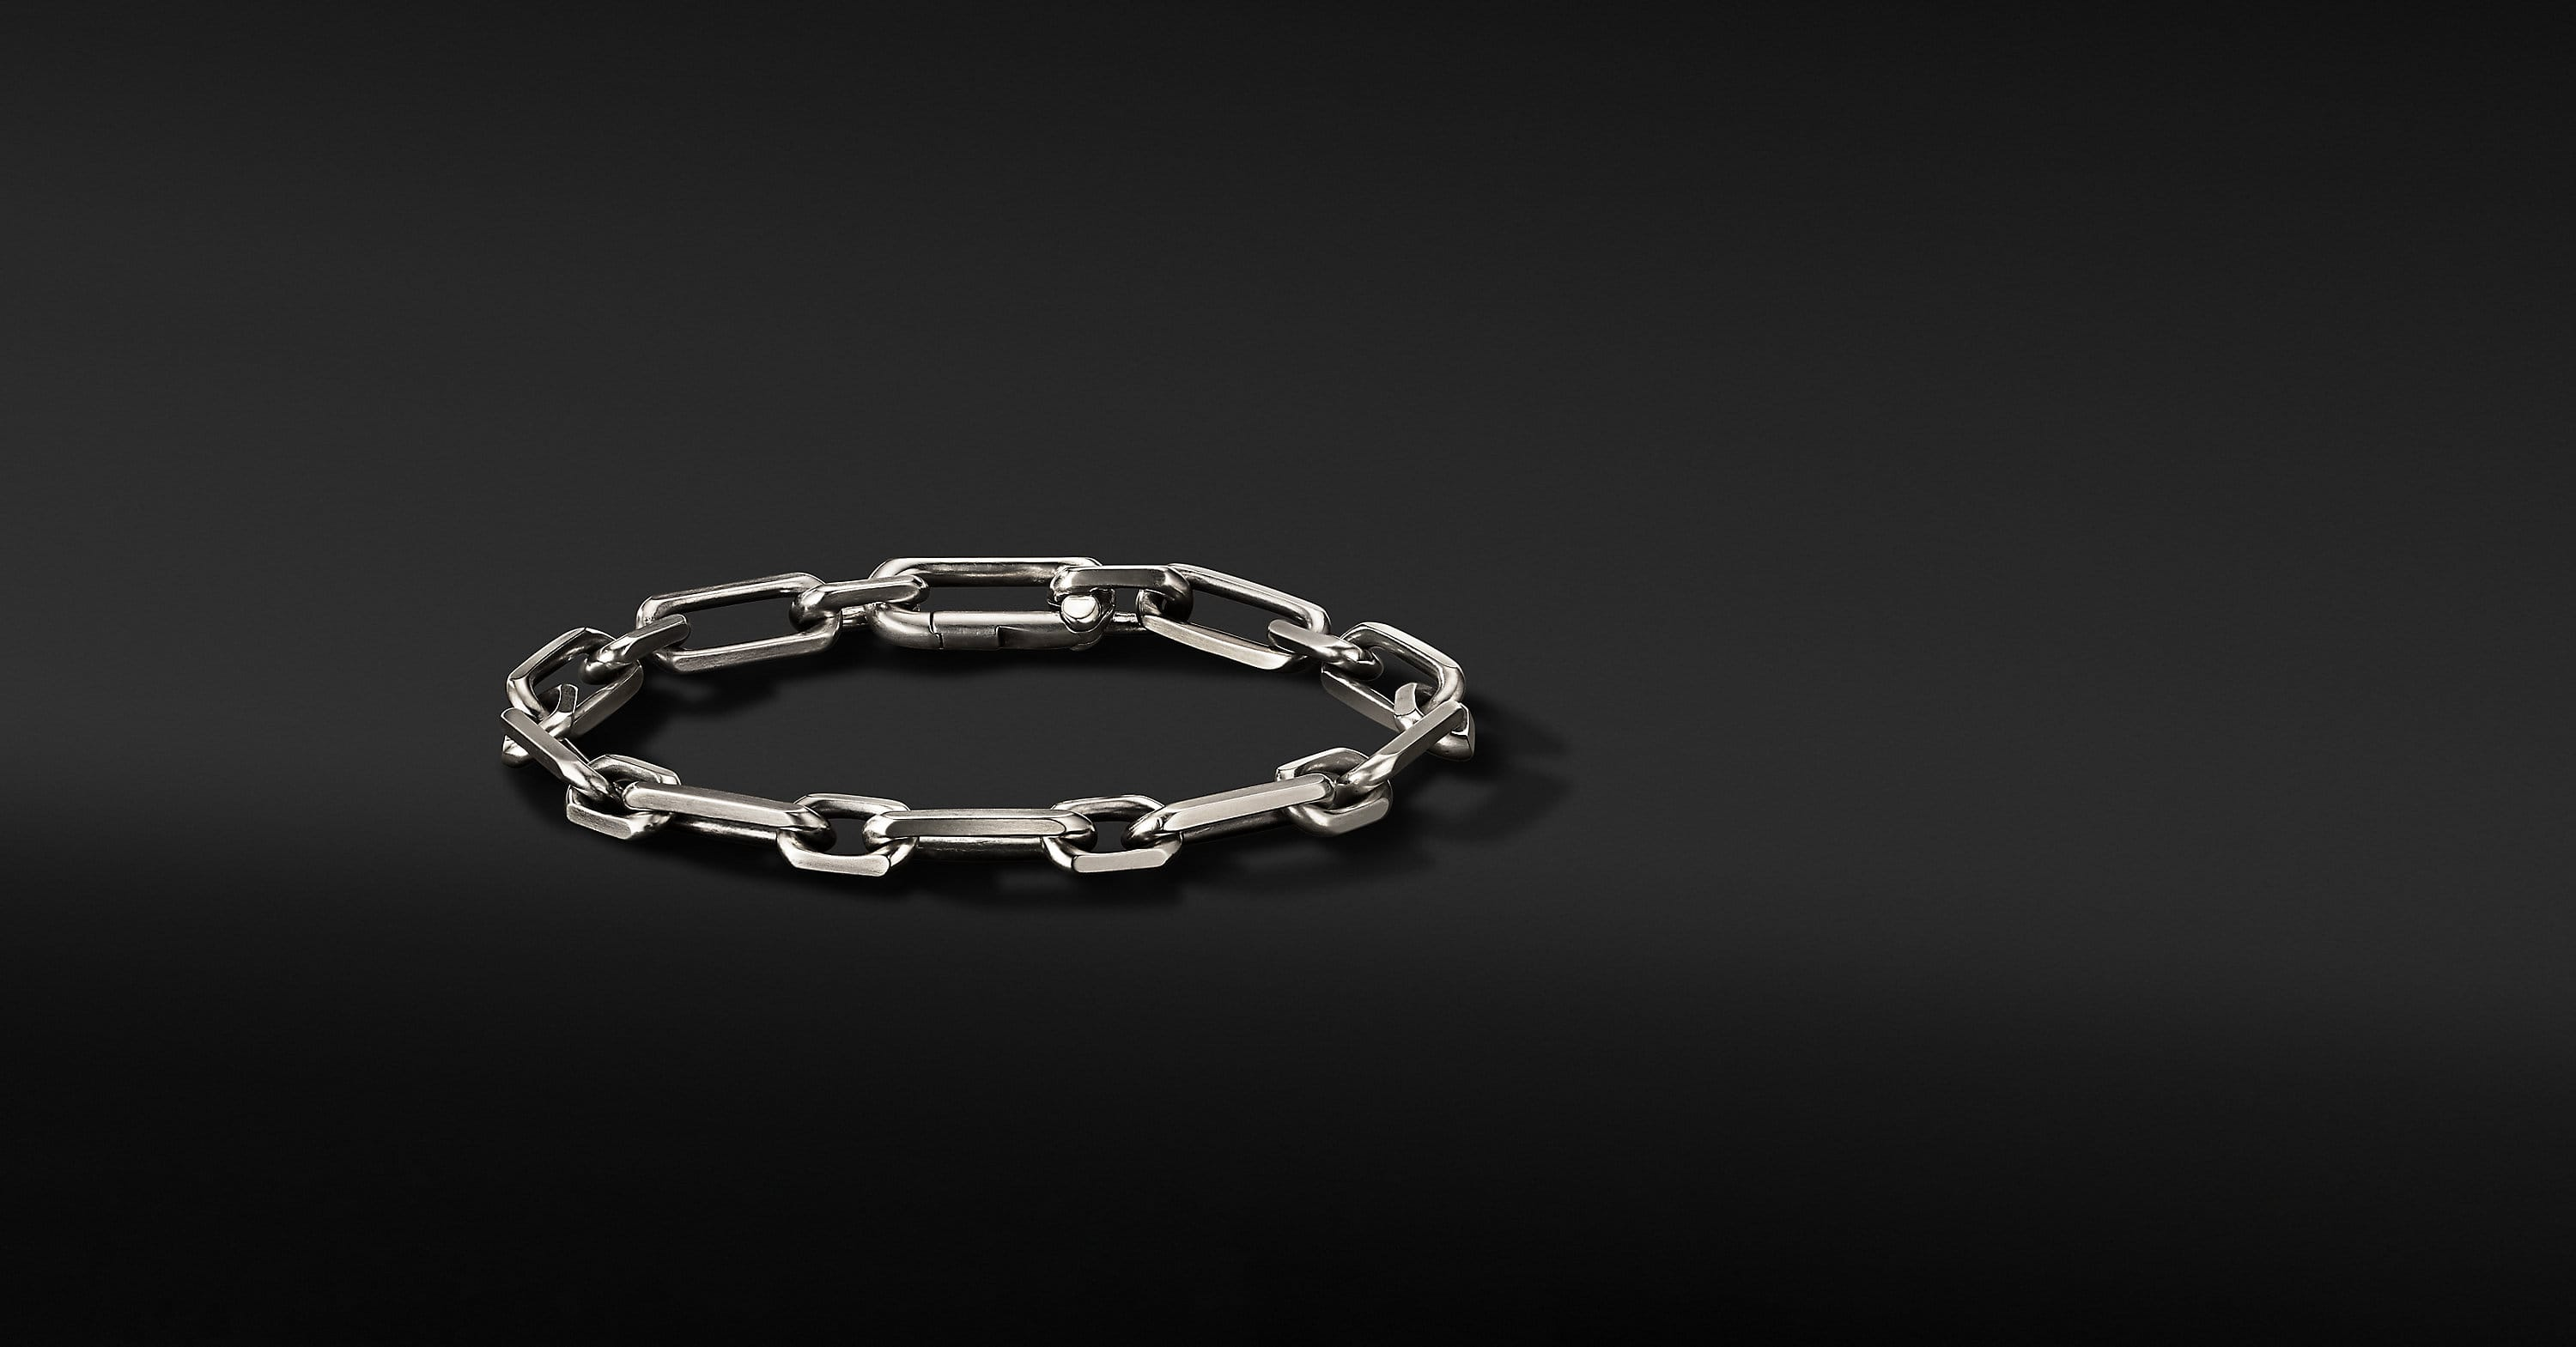 Elongated Open Link Chain Bracelet